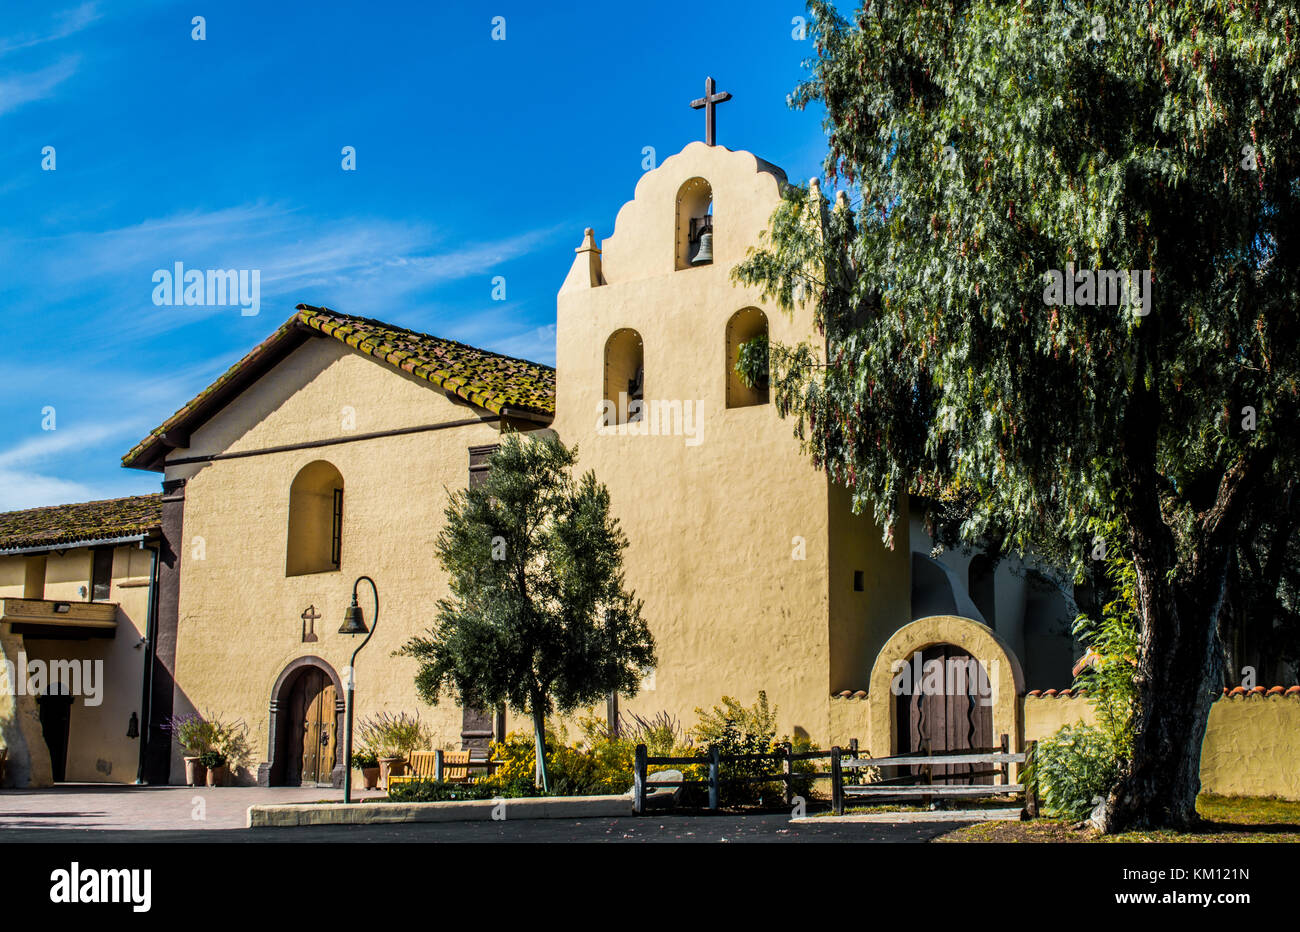 exterior of Santa Ines mission and grounds in Solvang, California, US with early morning sunlight - Stock Image